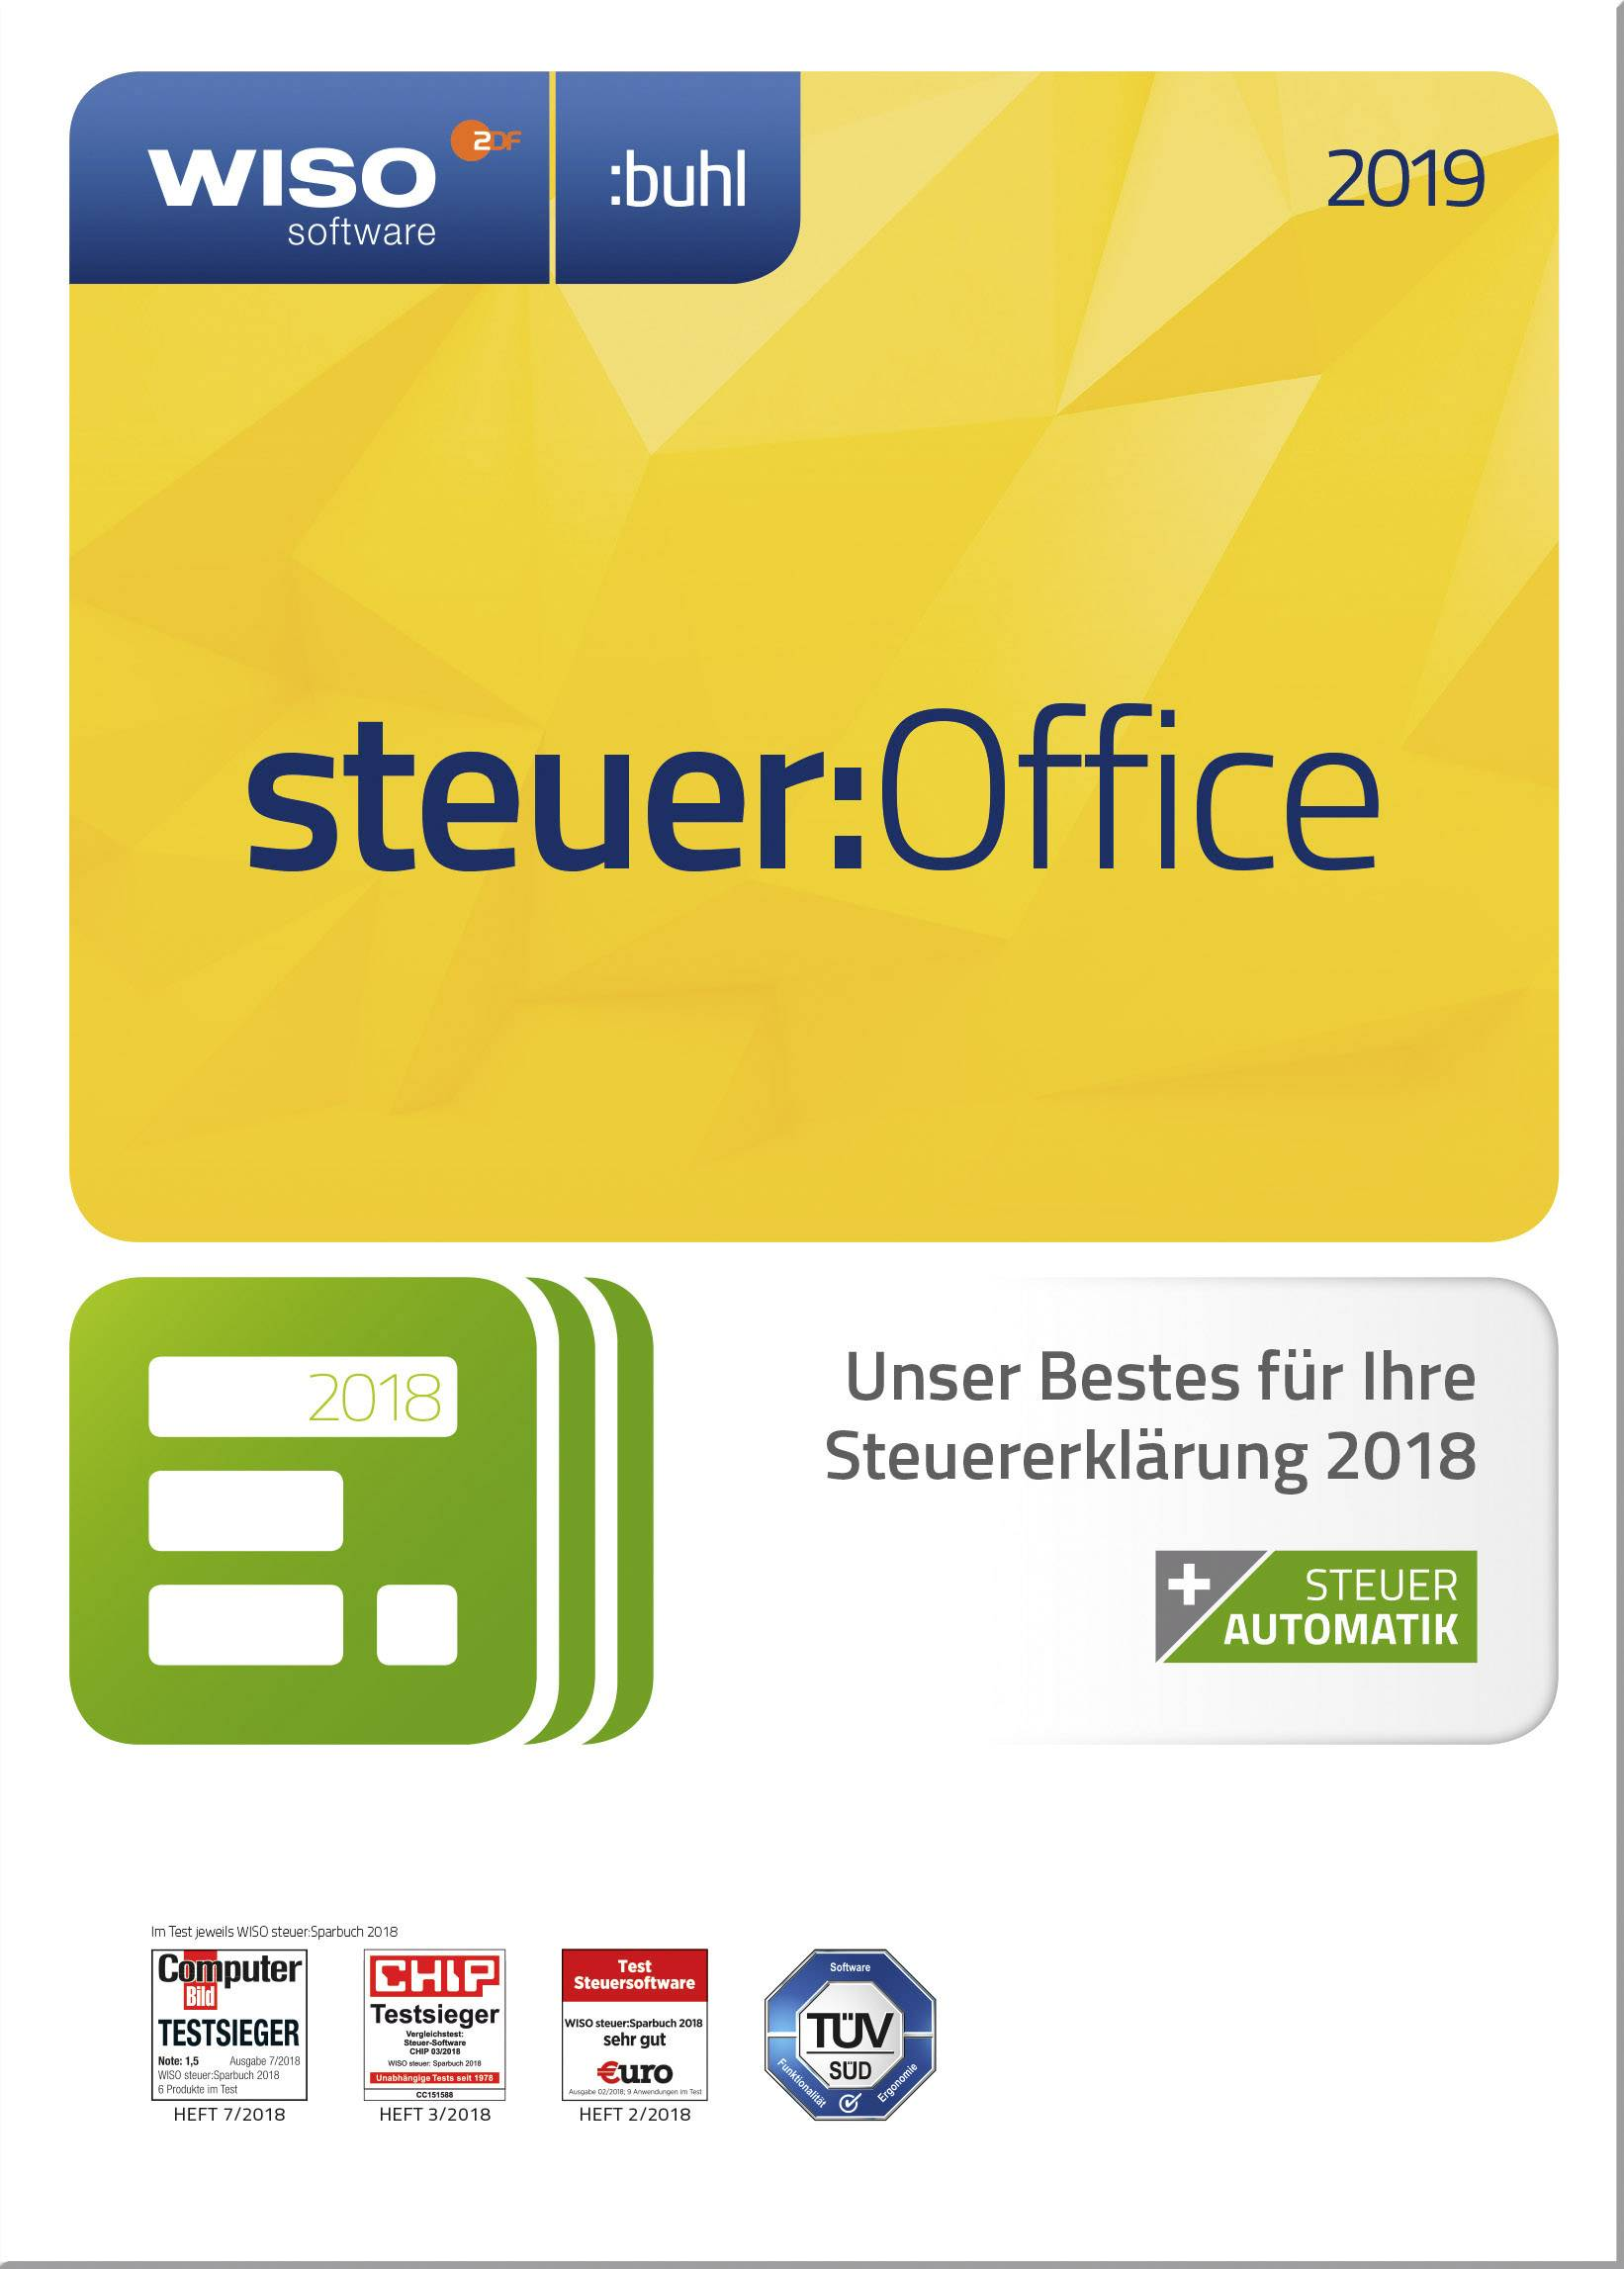 WISO steuer:Office 2019 Full version, 1 license Windows